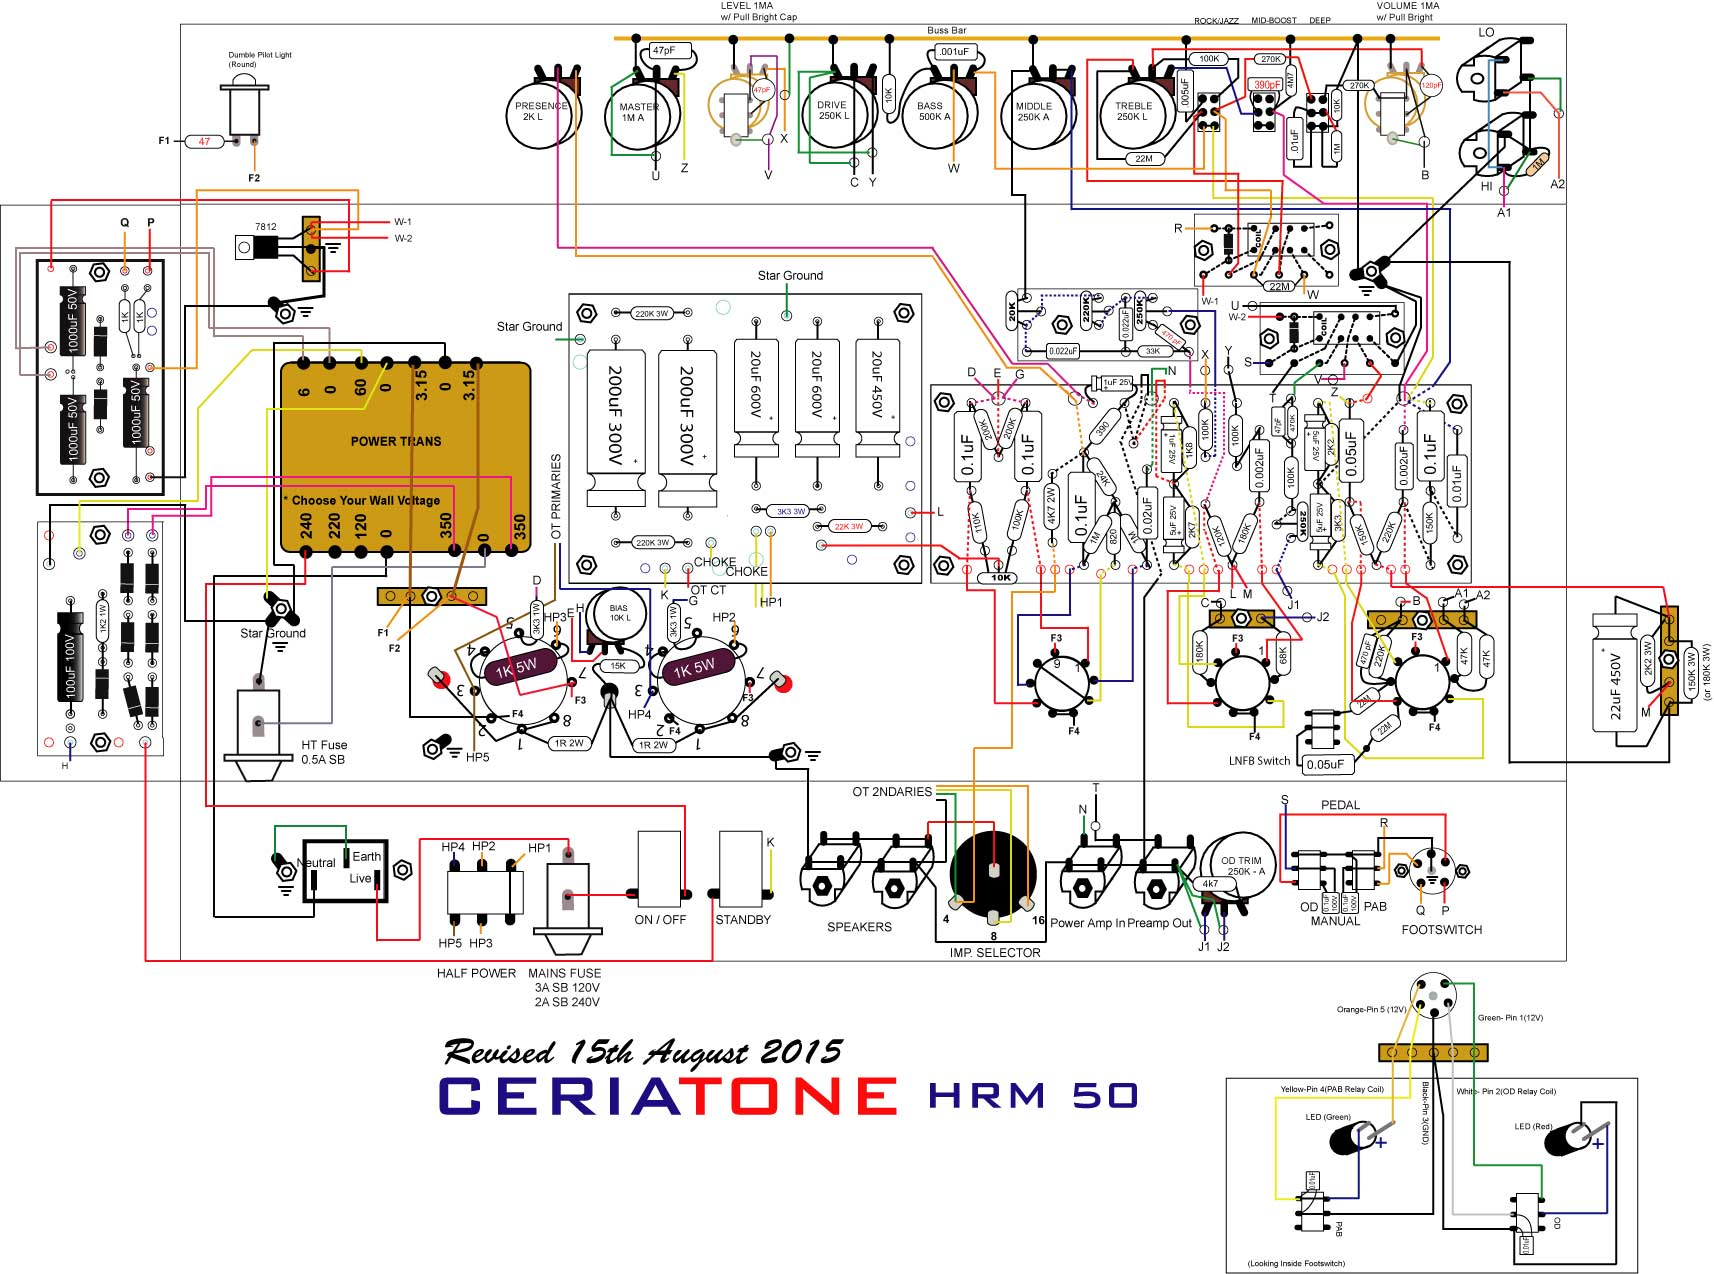 Fender Jaguar Bass Wiring Diagram together with 25 Les Paul Tips likewise 357191814172850562 additionally Telecaster Wiring Diagram Treble Bleed also The Two Pickup Esquire Wiring. on telecaster wiring diagram mods